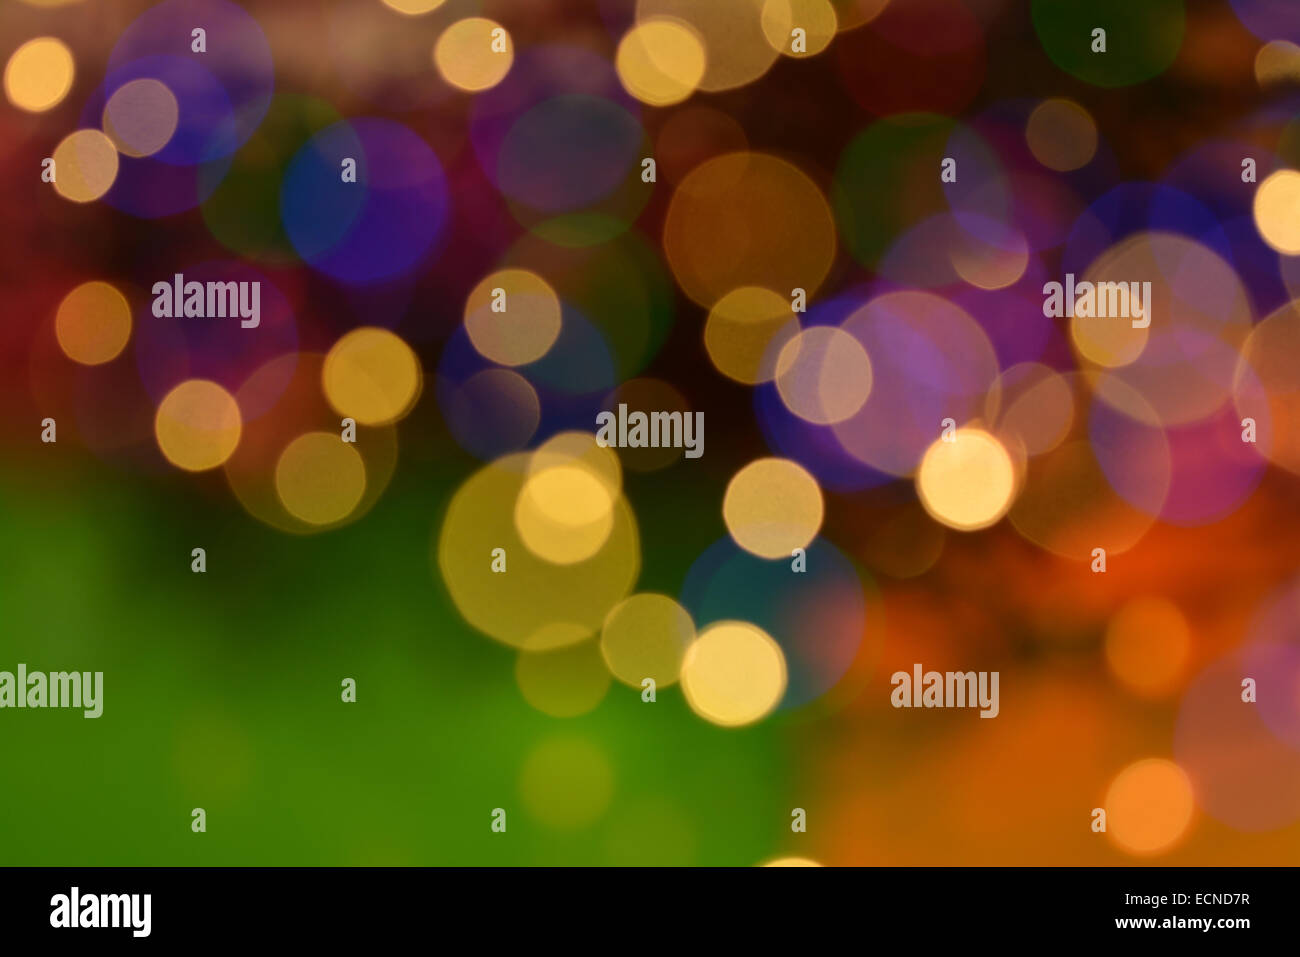 Blurred 'New Year' Christmas tree lights background in warm colours of gold green purple and orange - Stock Image